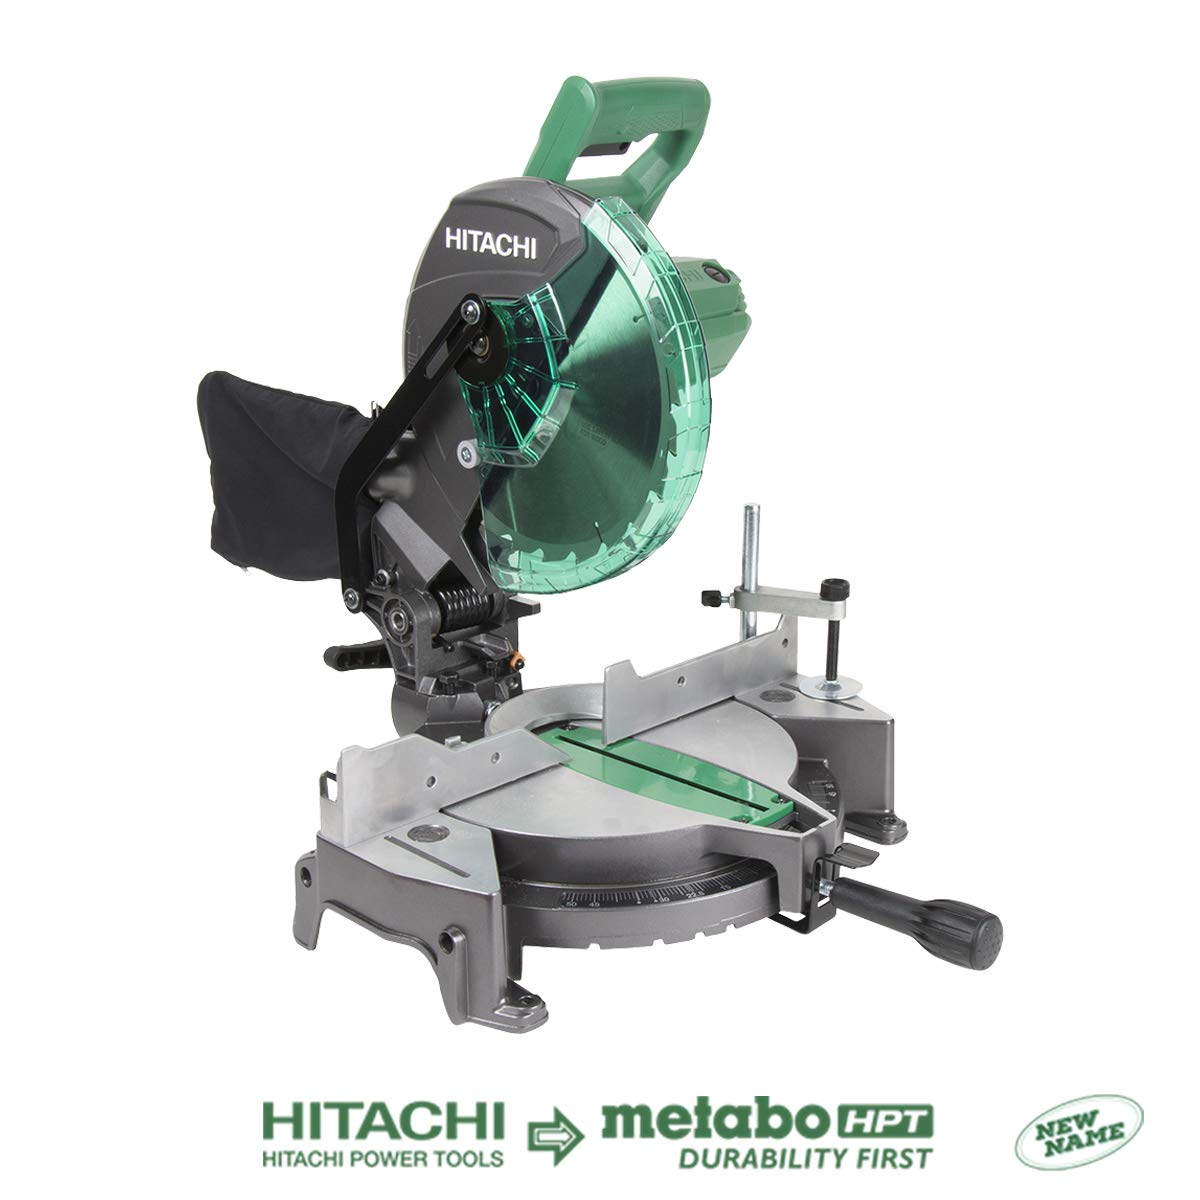 Metabo HPT C10FCGS 10-inch Compound Miter Saw